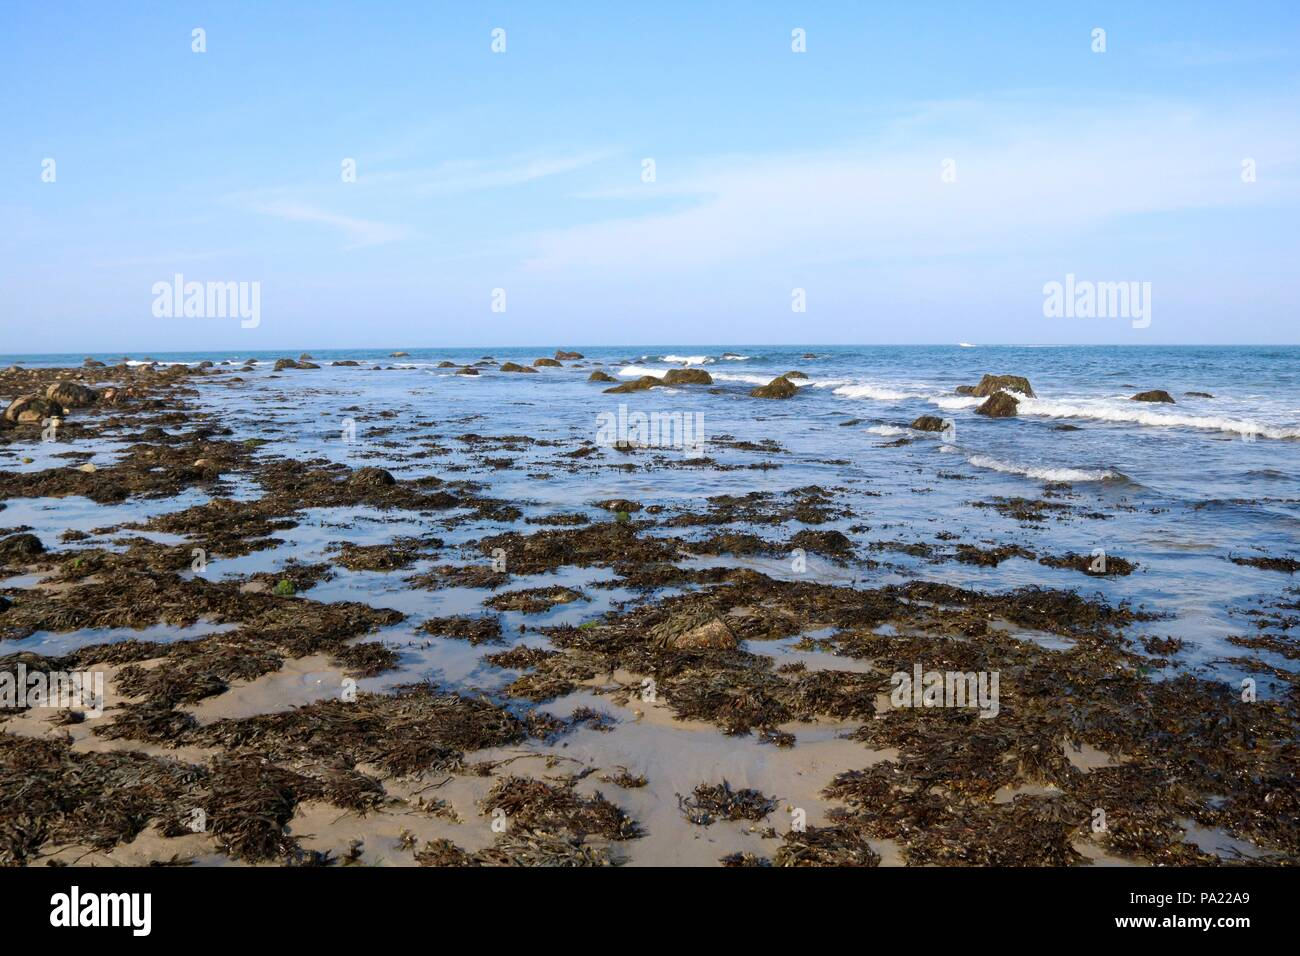 A view of the ocean from Mansion Beach, Block Island, Rhode Island. - Stock Image